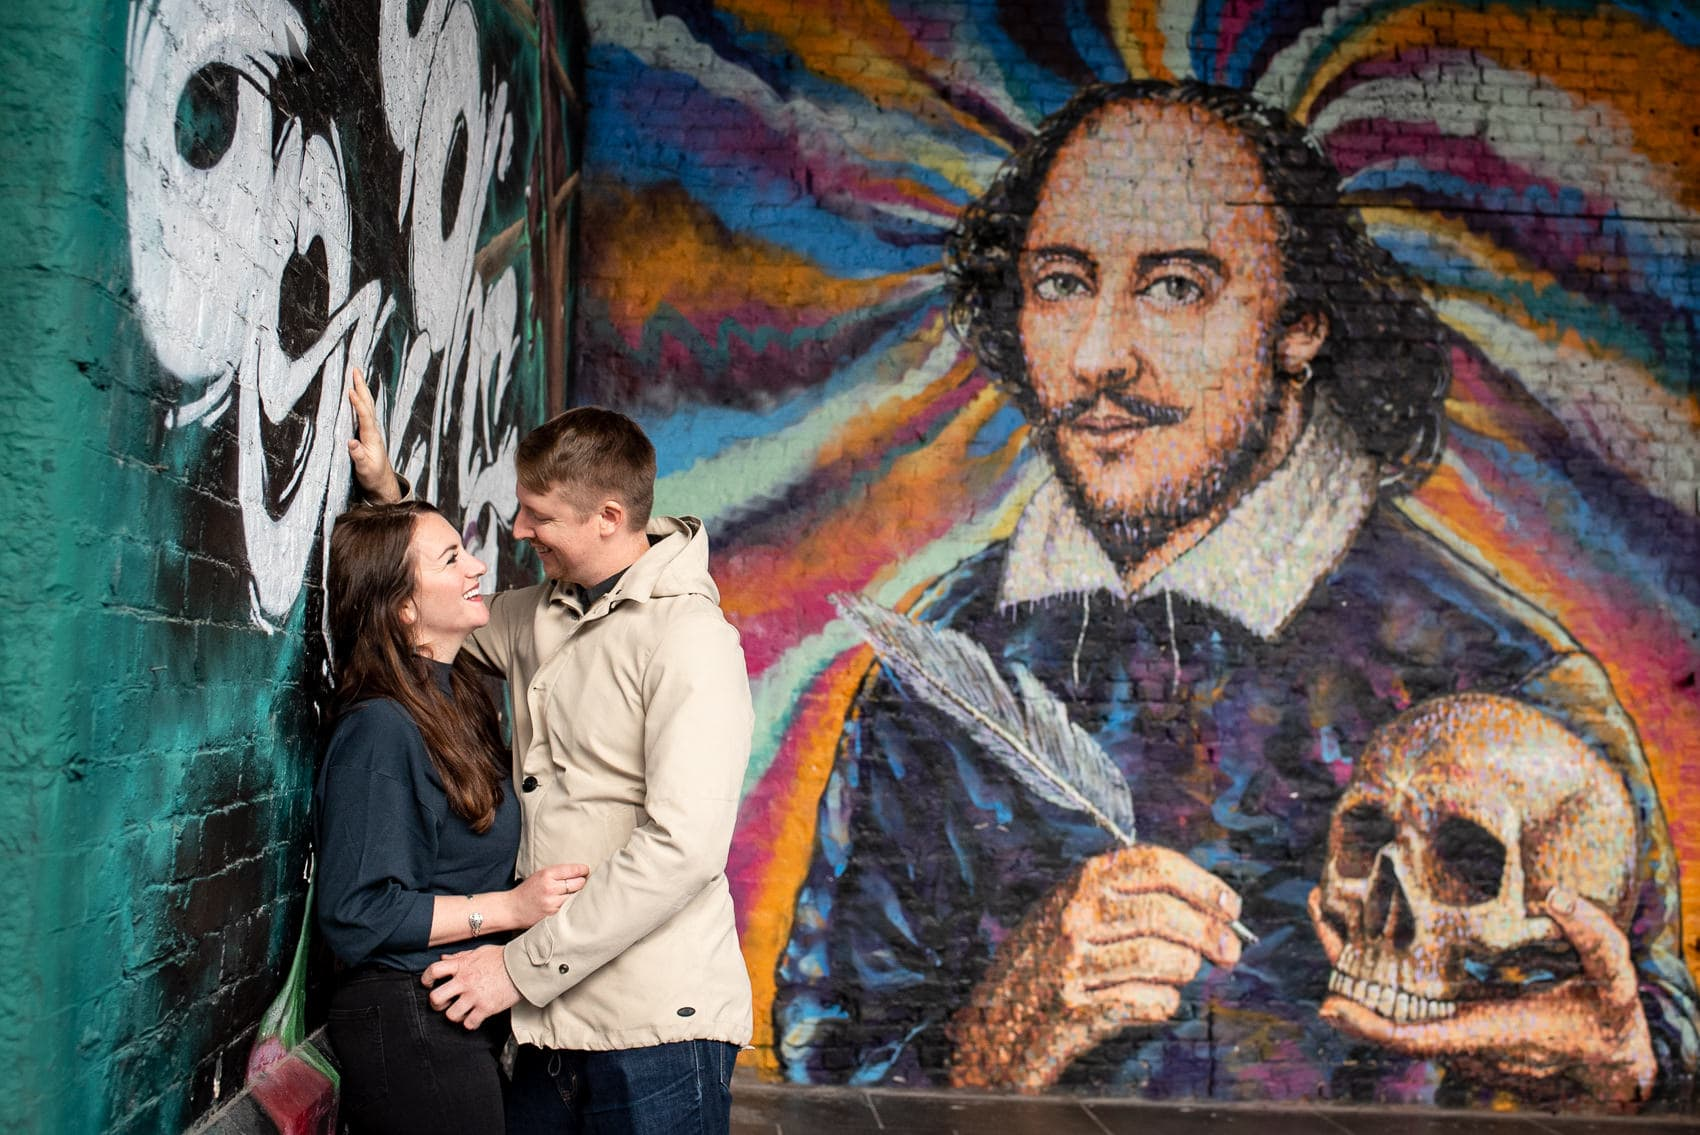 couple smiling in front of Shakespeare graffiti near borough market in london